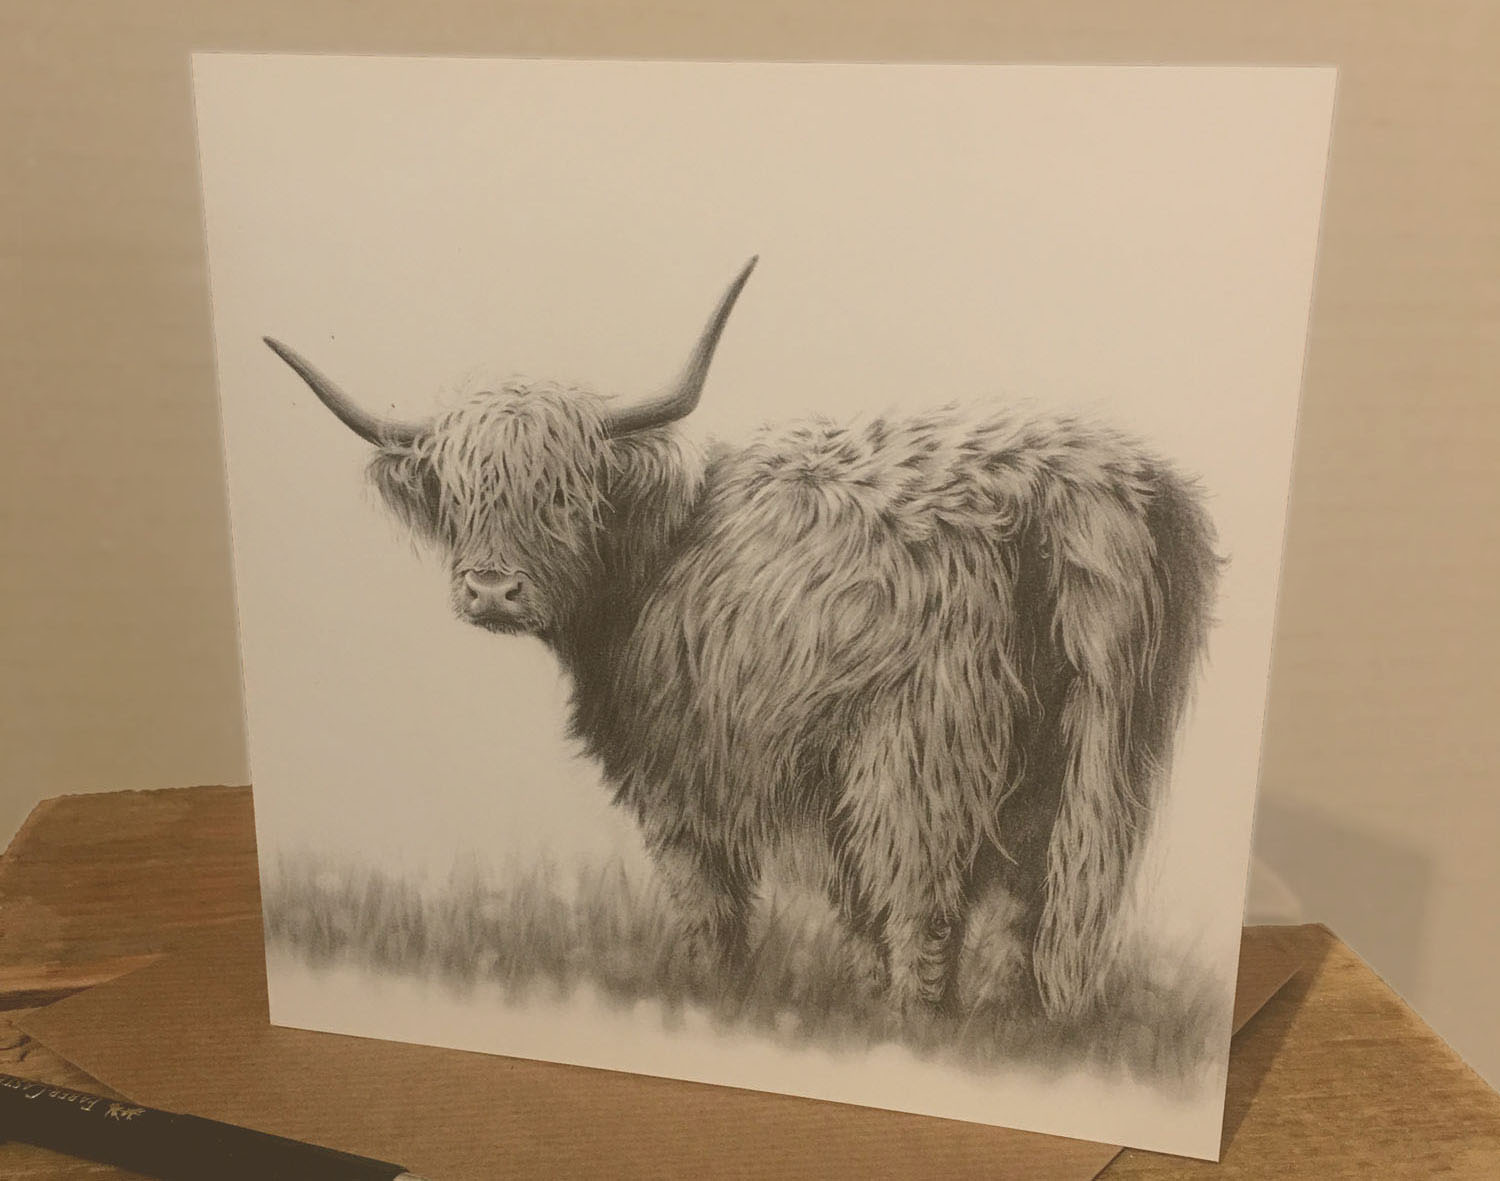 Greetings Cards - Browse the full range of British wildlife, farm animals, and dog greetings cards